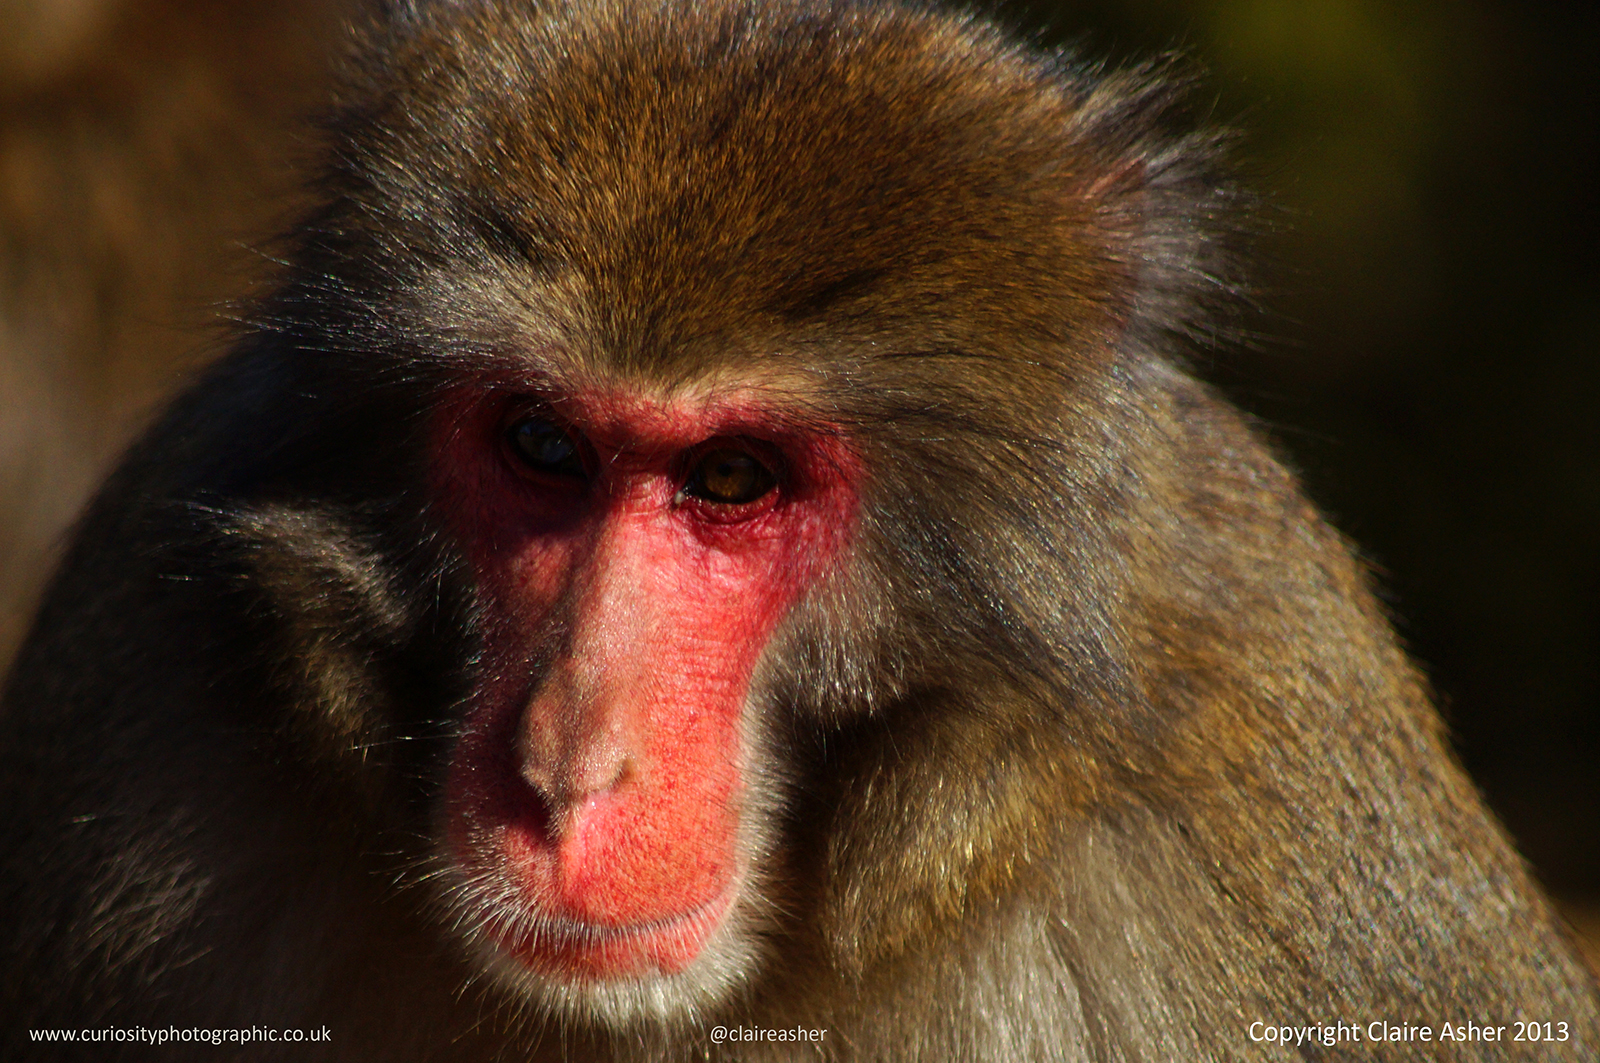 A Japanese macaque (Macaca fuscata) photographed in Kyoto in 2013.